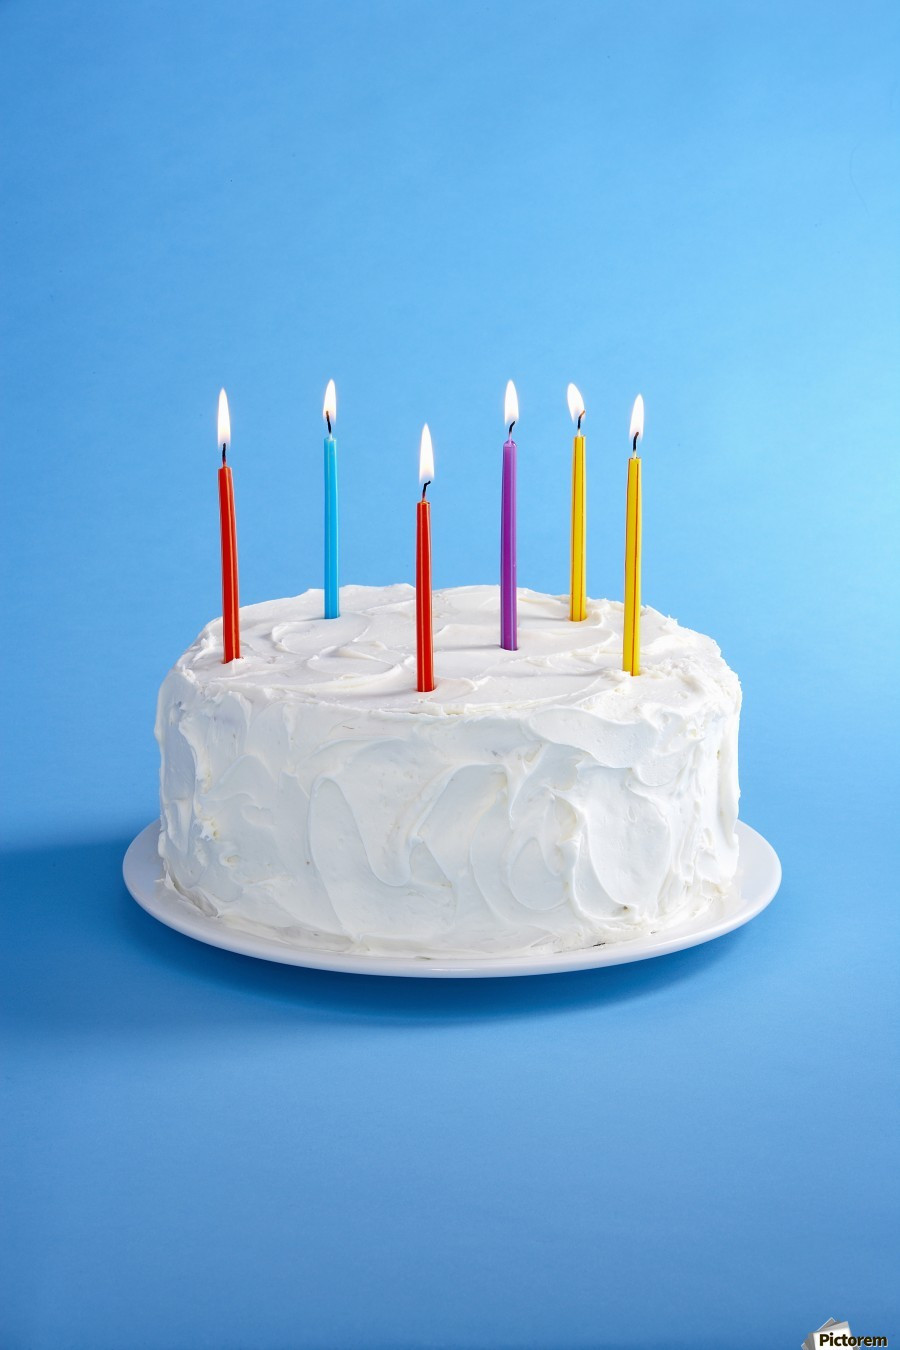 Best ideas about Birthday Cake Candles . Save or Pin Birthday Cake With Candles PacificStock Canvas Now.